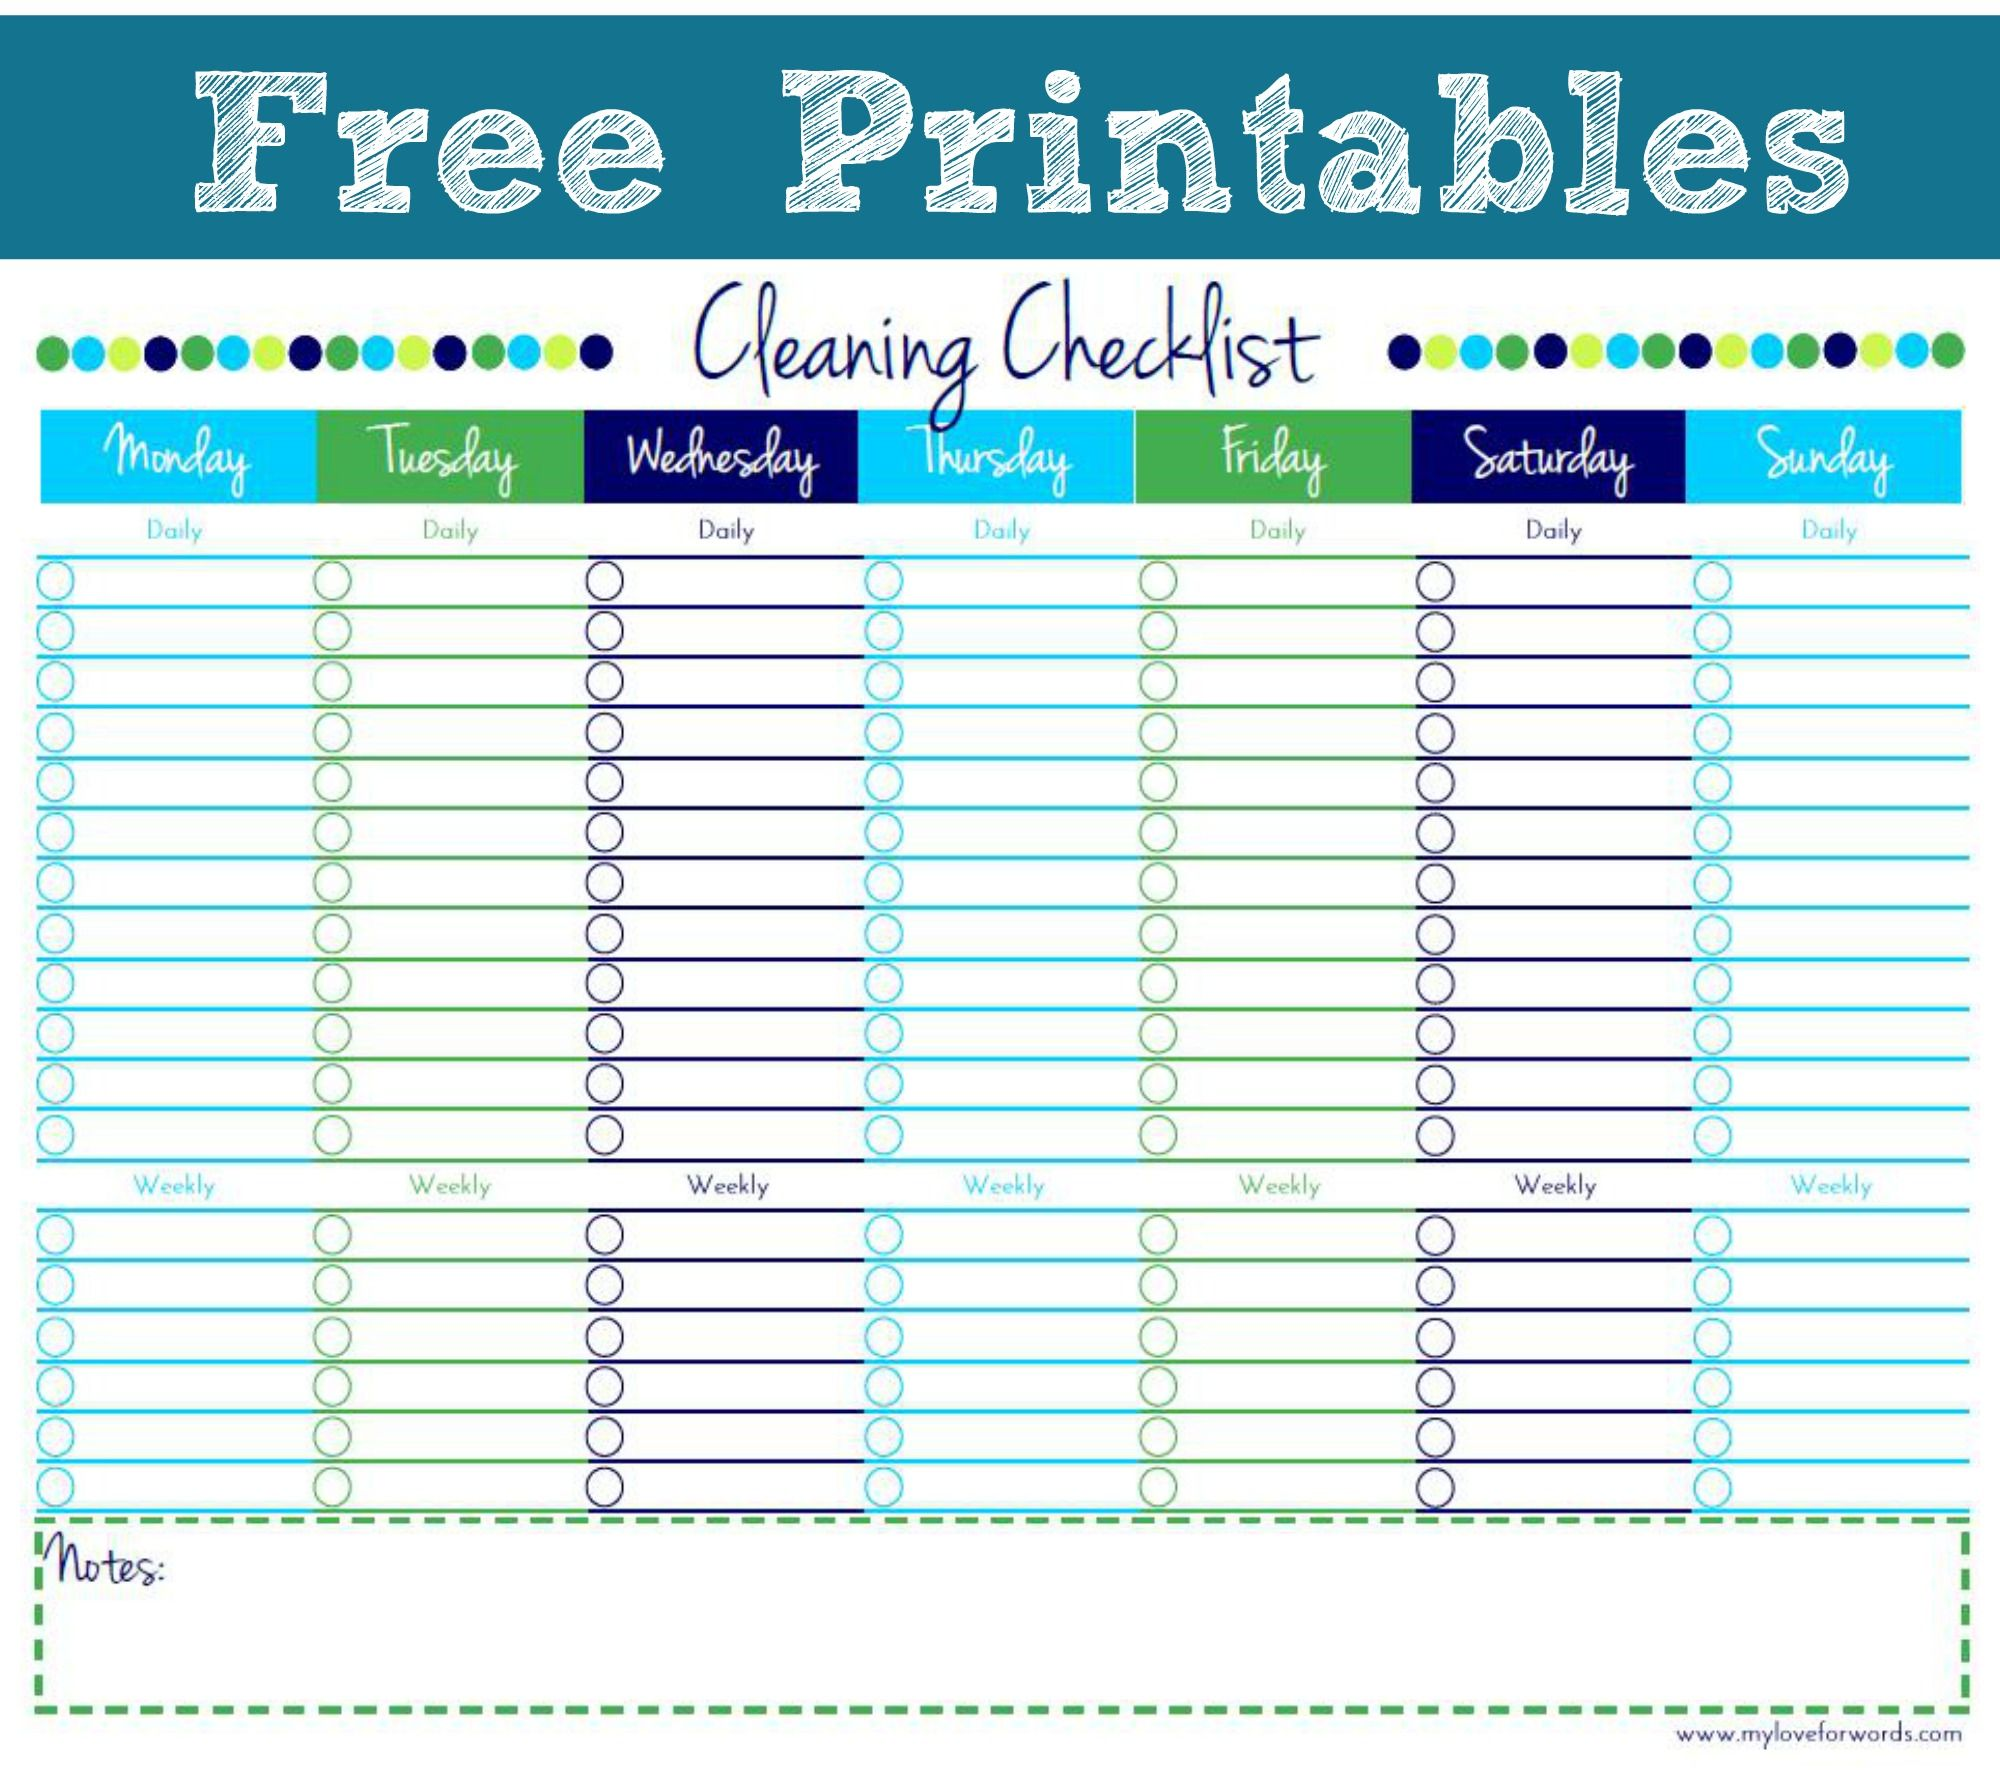 Cleaning Checklist {Free Printable} | Cleaning checklist, Free ...